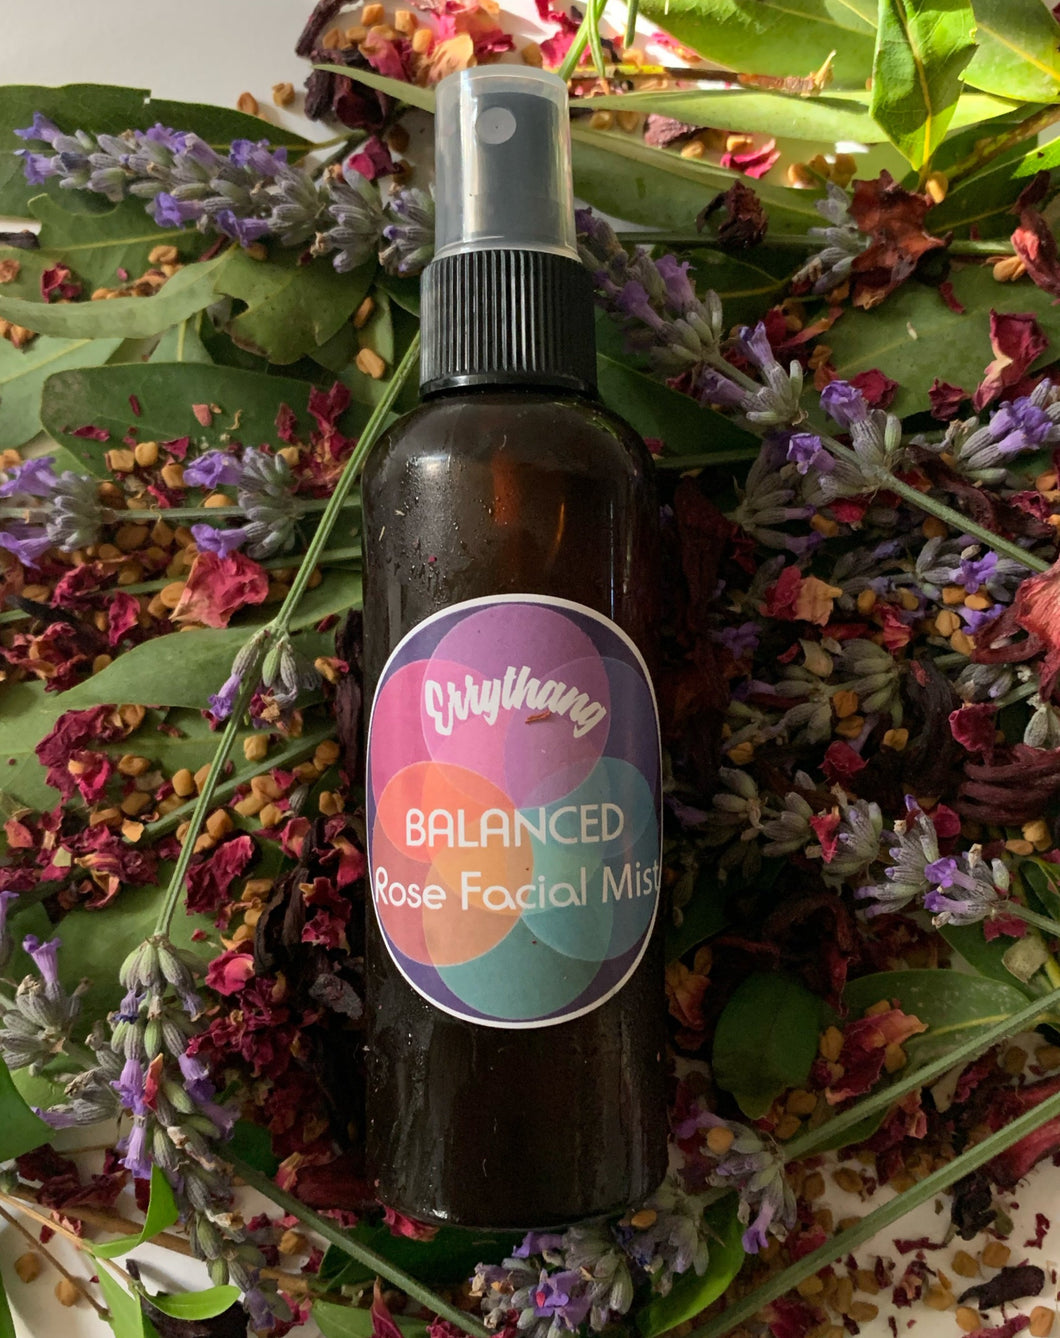 Looking for Clearer more Even Skin?  Our Rose and Lavander Facial toner is anti-bacterial and works to balance skin.  Balance Skins PH Evens Skintone  Brightens skin  Anti-bacterial Fights acne and Scarring  Anti Aging  Firms and Refreshes skin  2 Month supply Ingredients  -   Fresh Rose, Lavender, Distilled Springwater, Tea  Tree Oil.